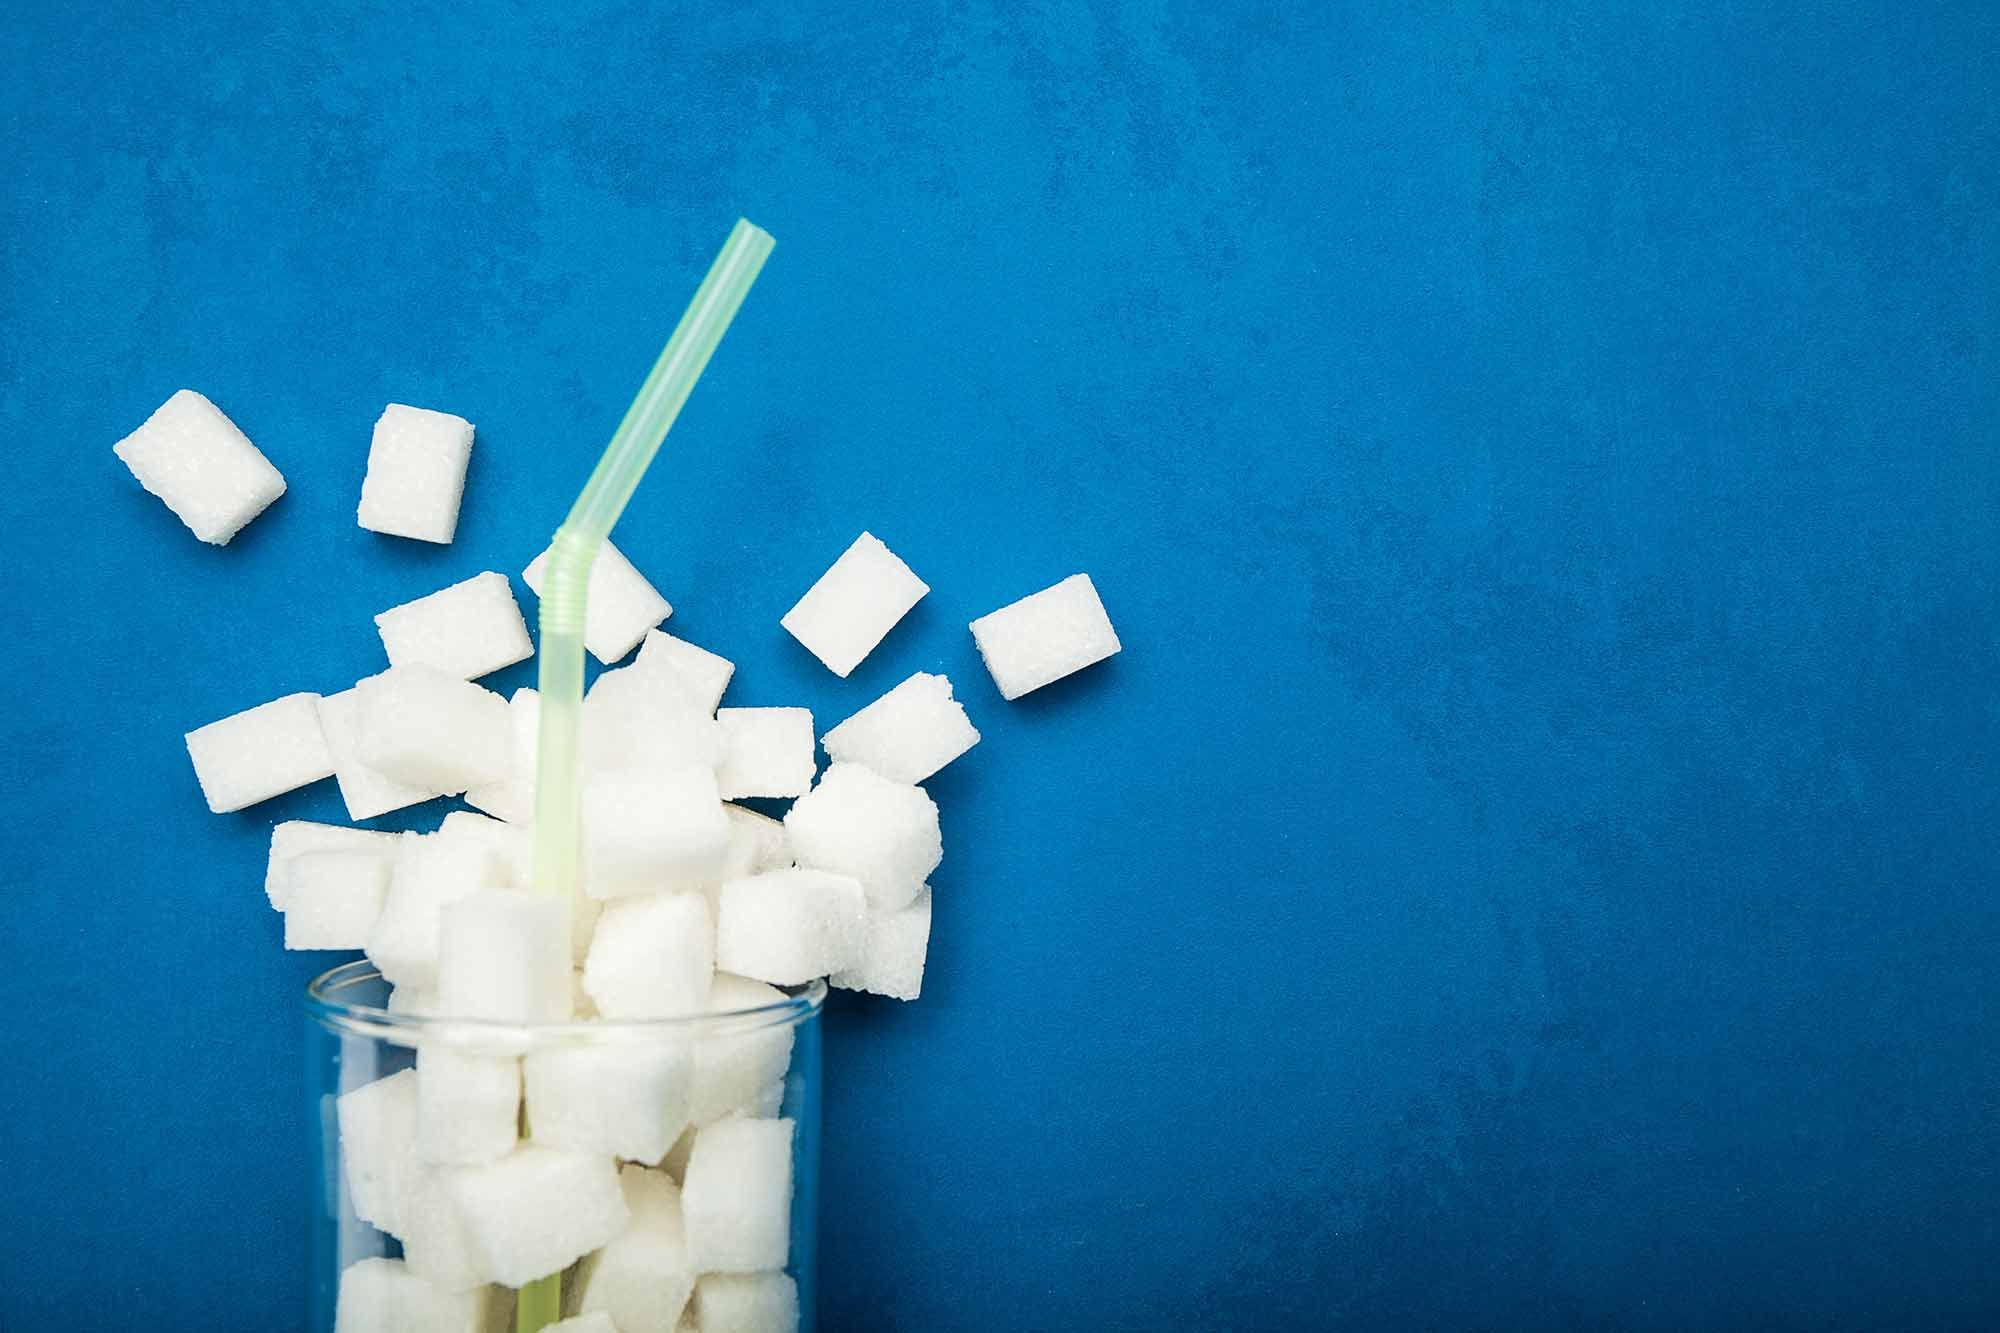 Printing health warnings on sugary drinks can lead to healthier beverage choices by consumers, a new study has revealed